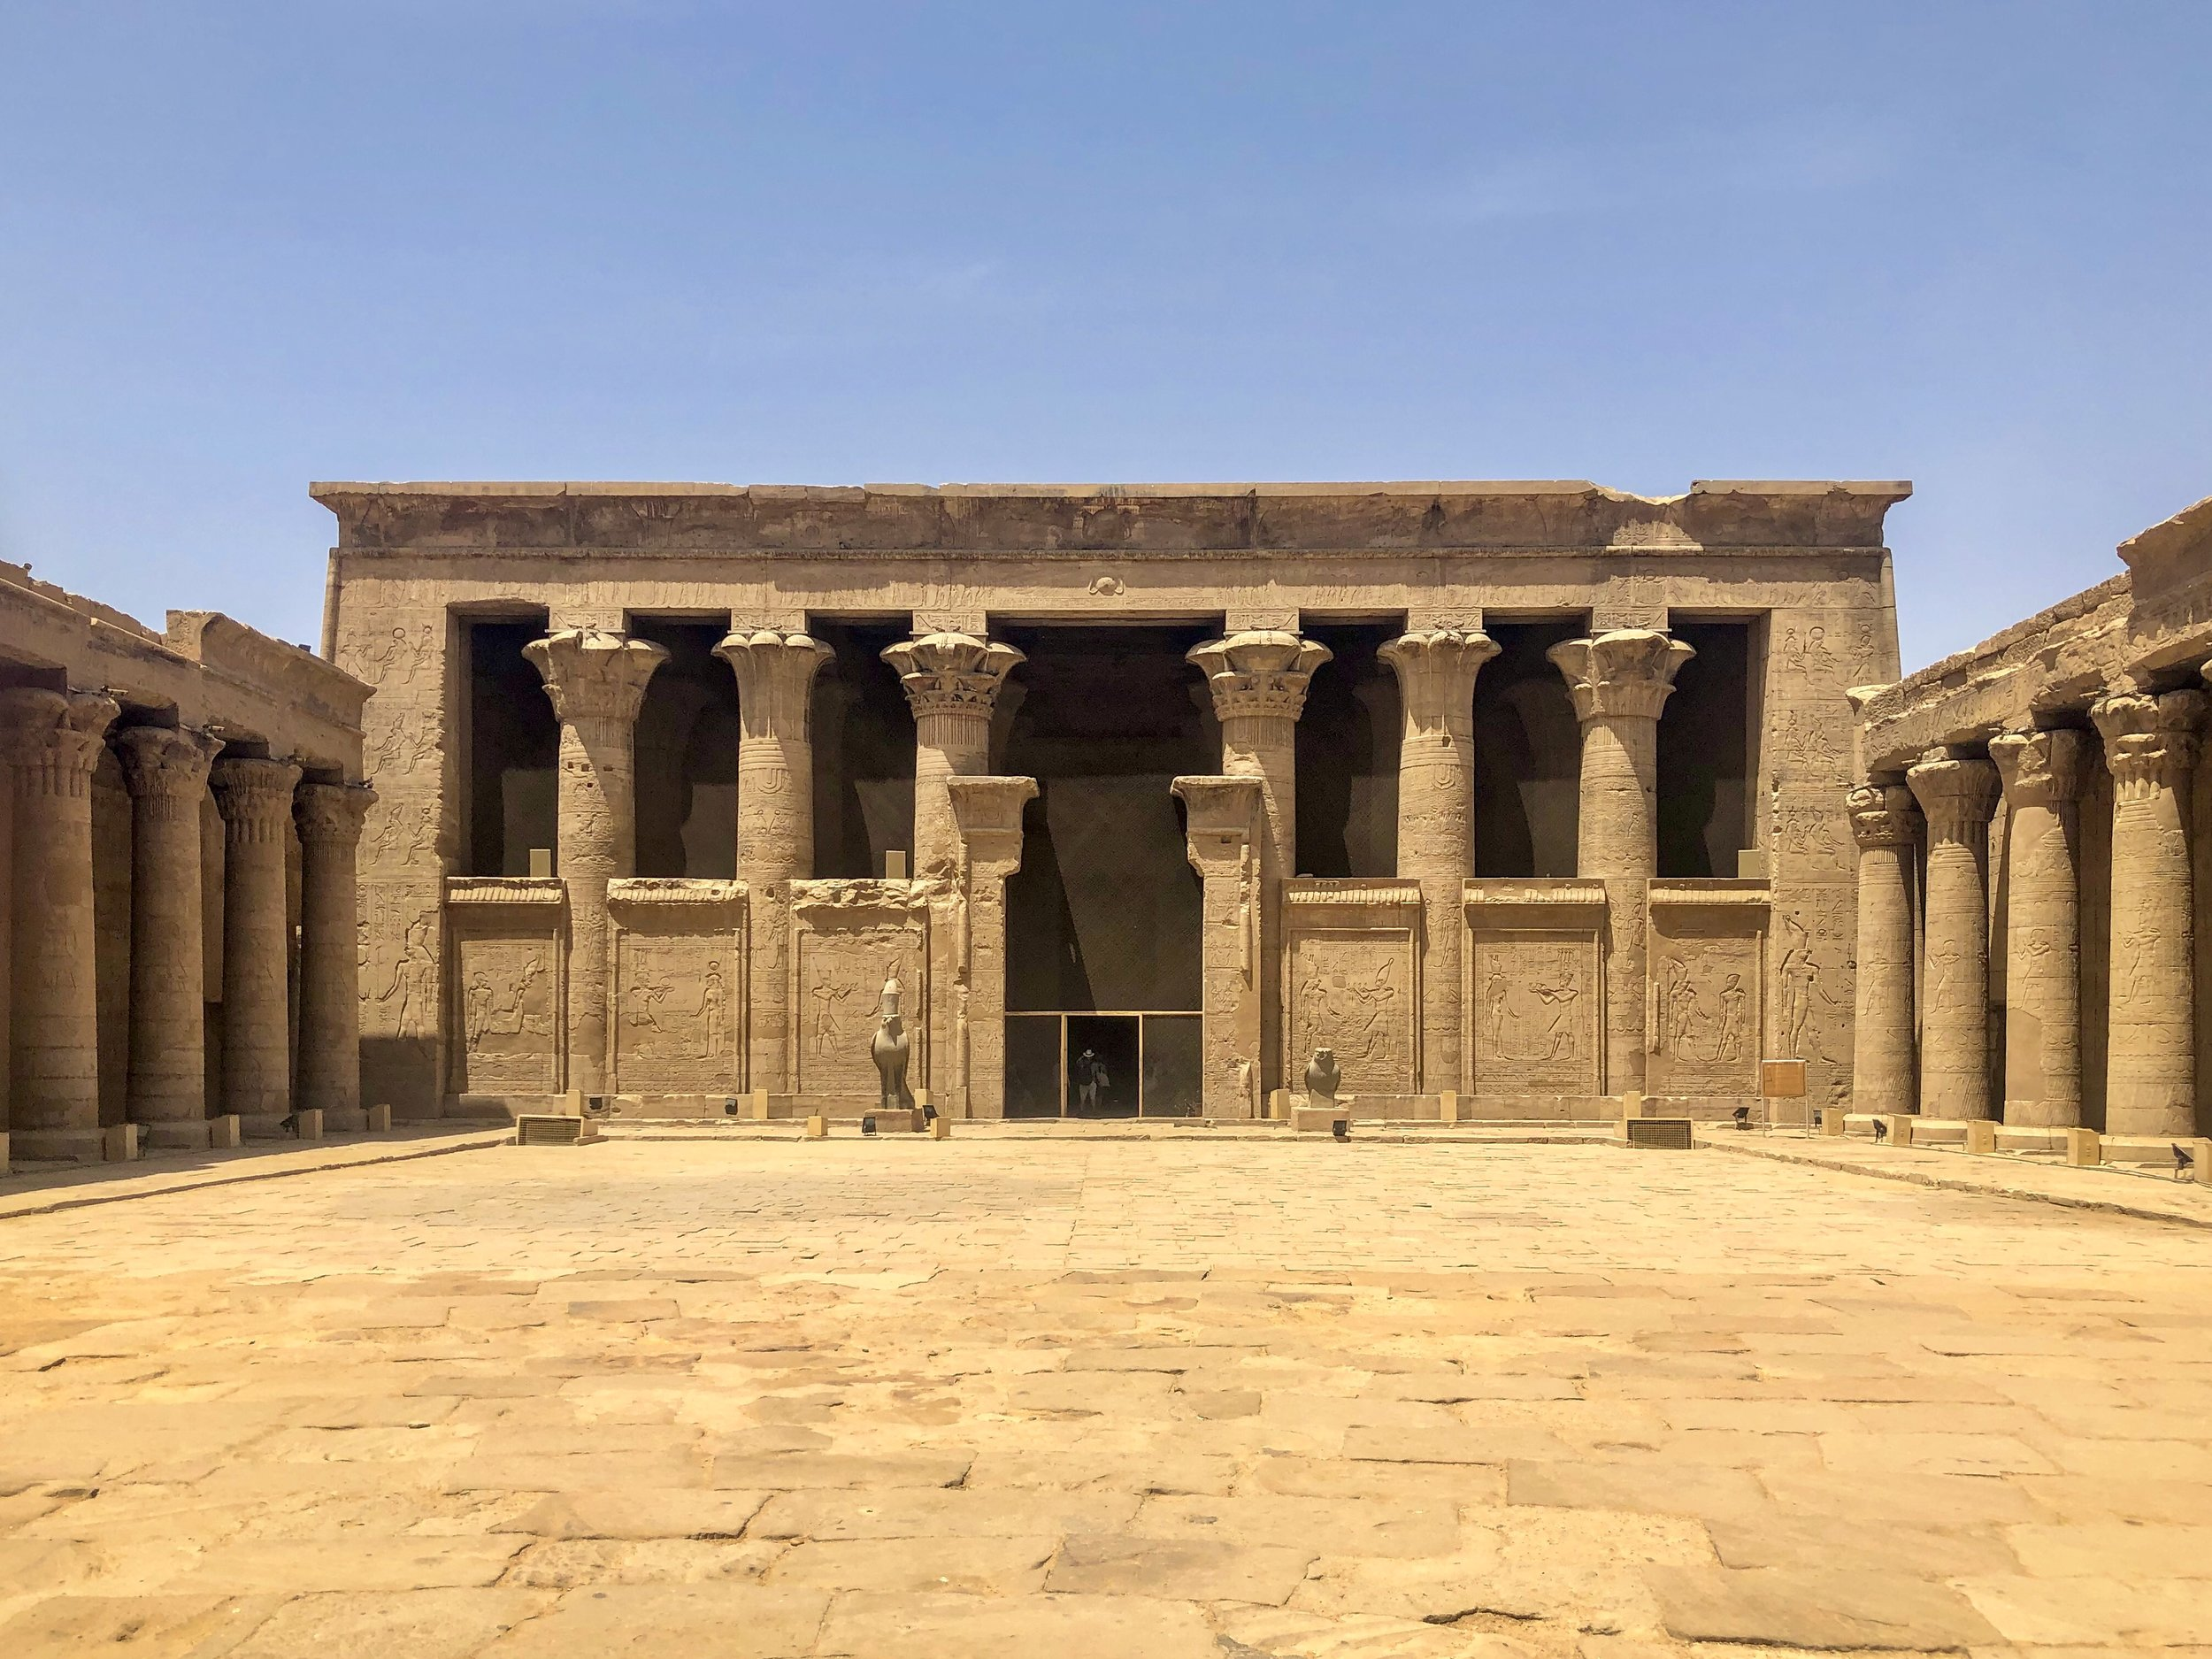 The well-preserved Temple of Horus at Edfu is in the Ptolemaic style